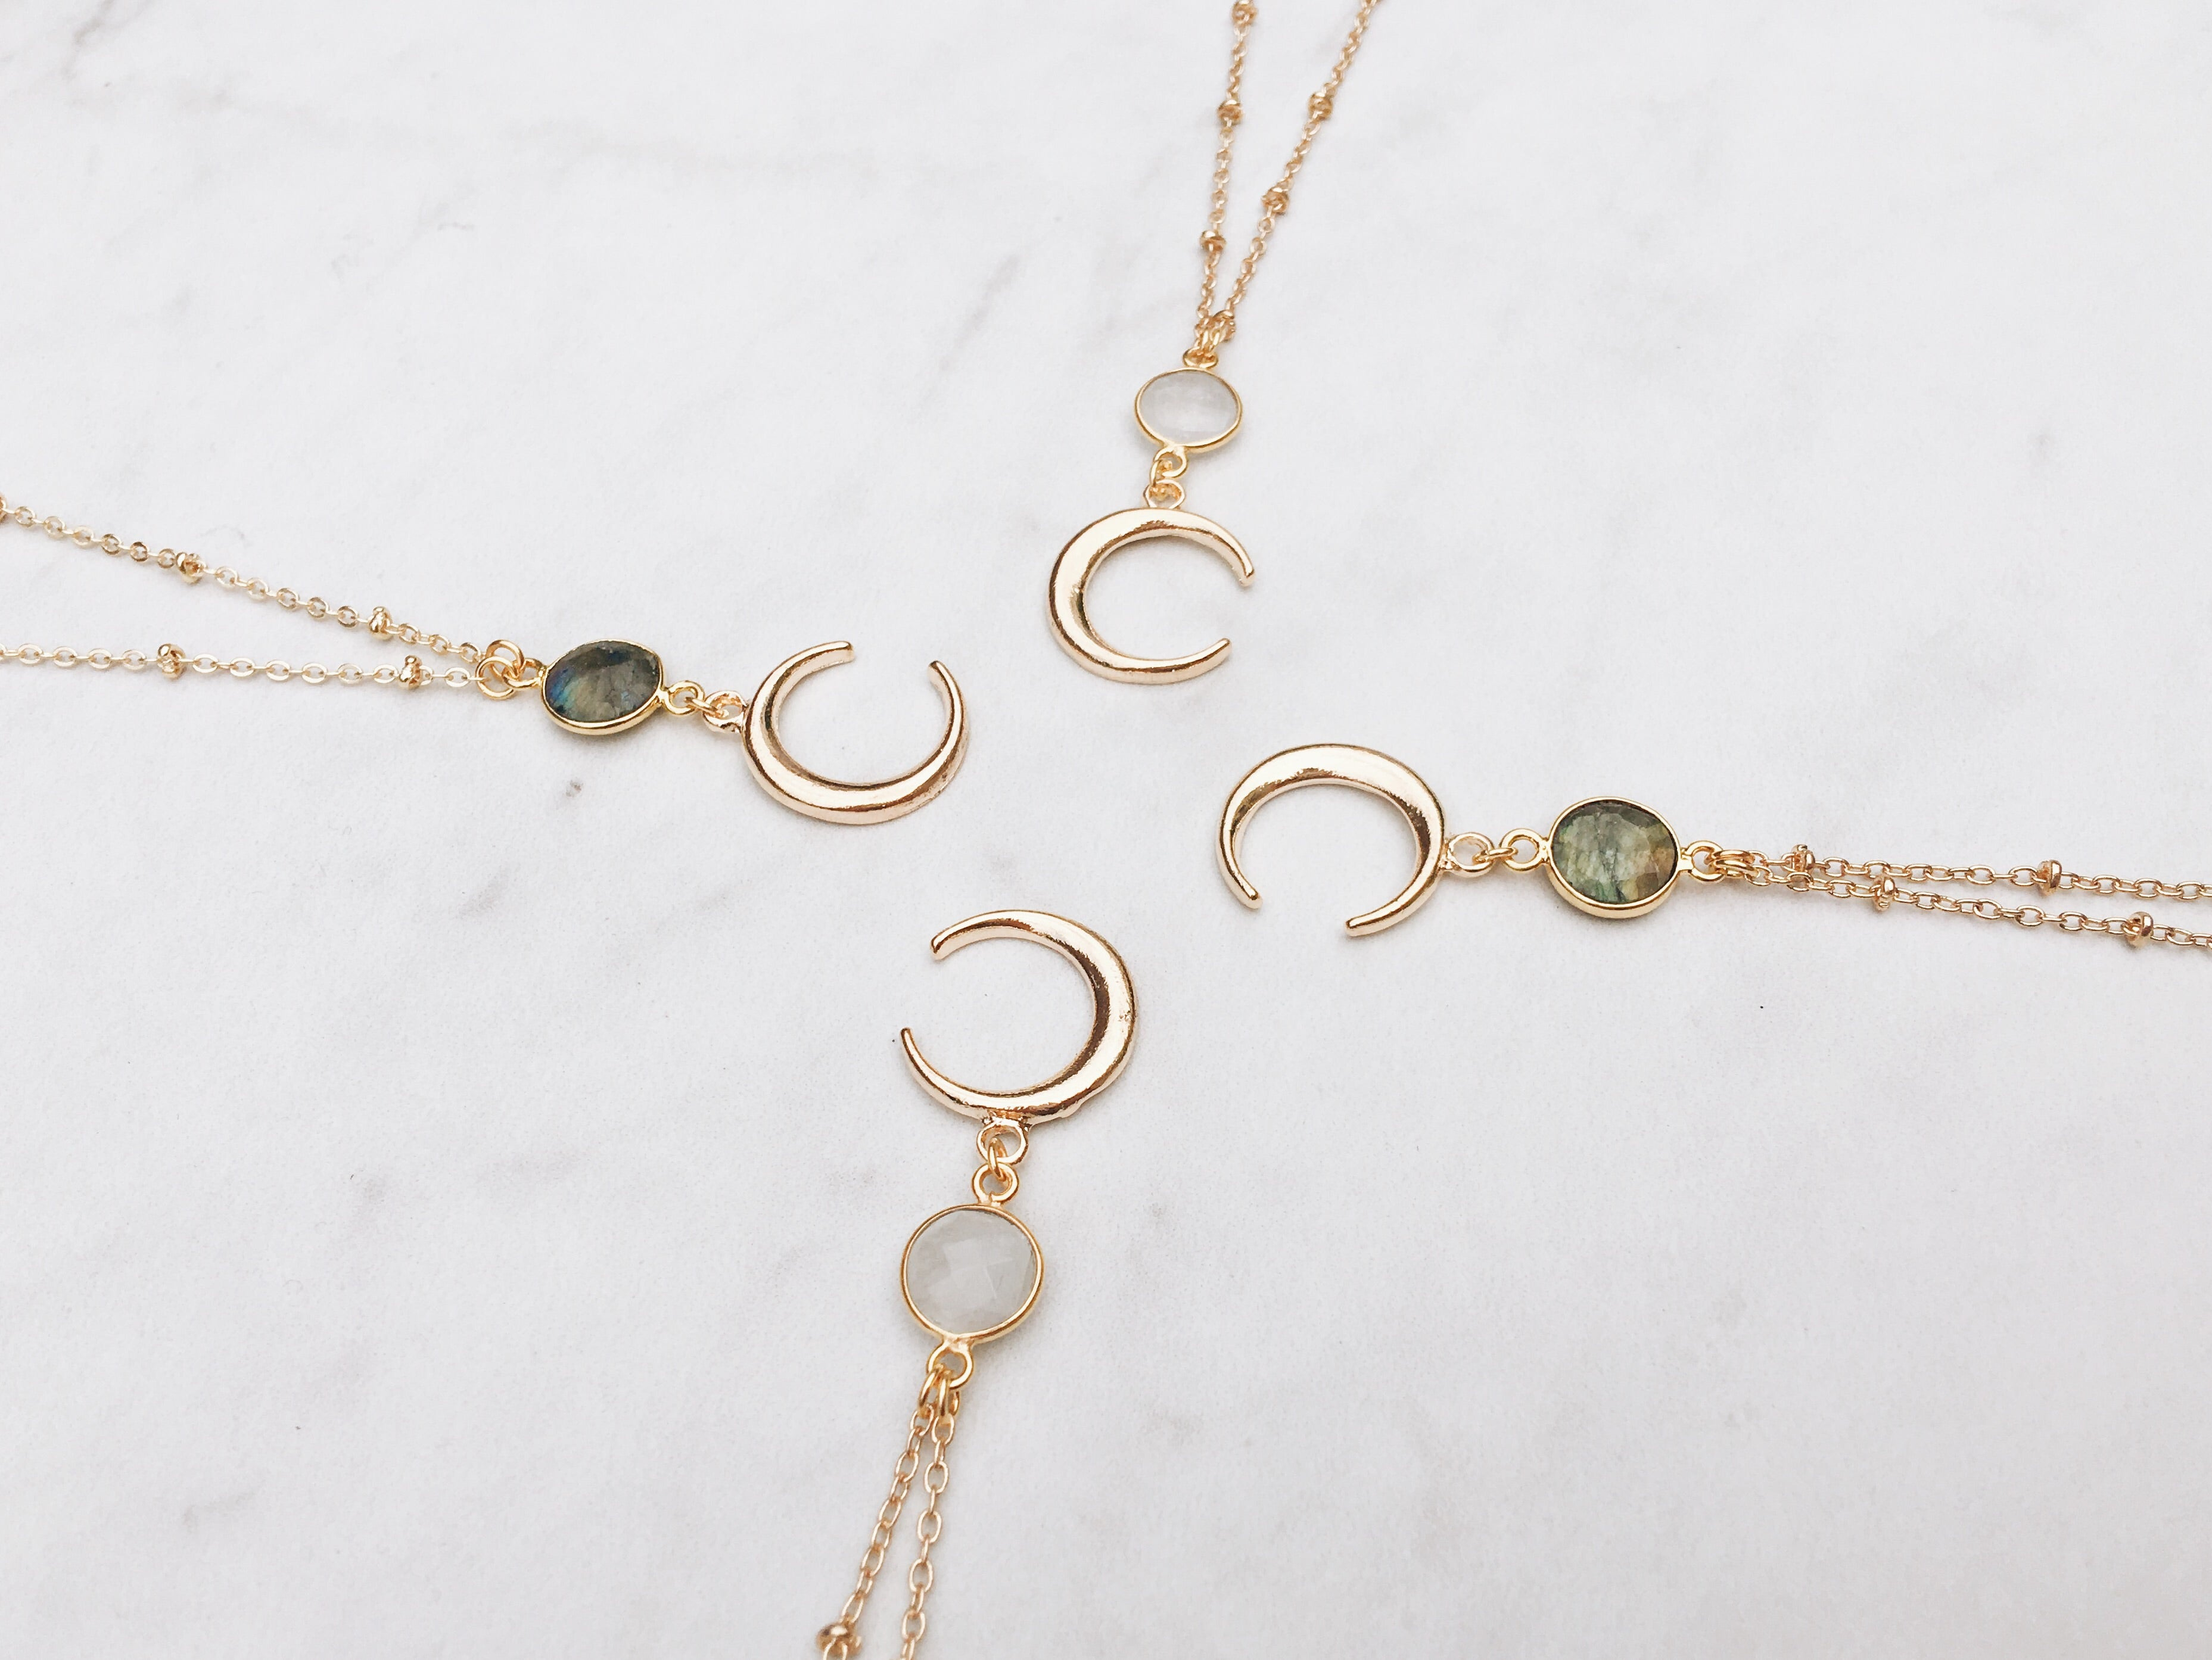 Luna Necklace in Labradorite or Moonstone